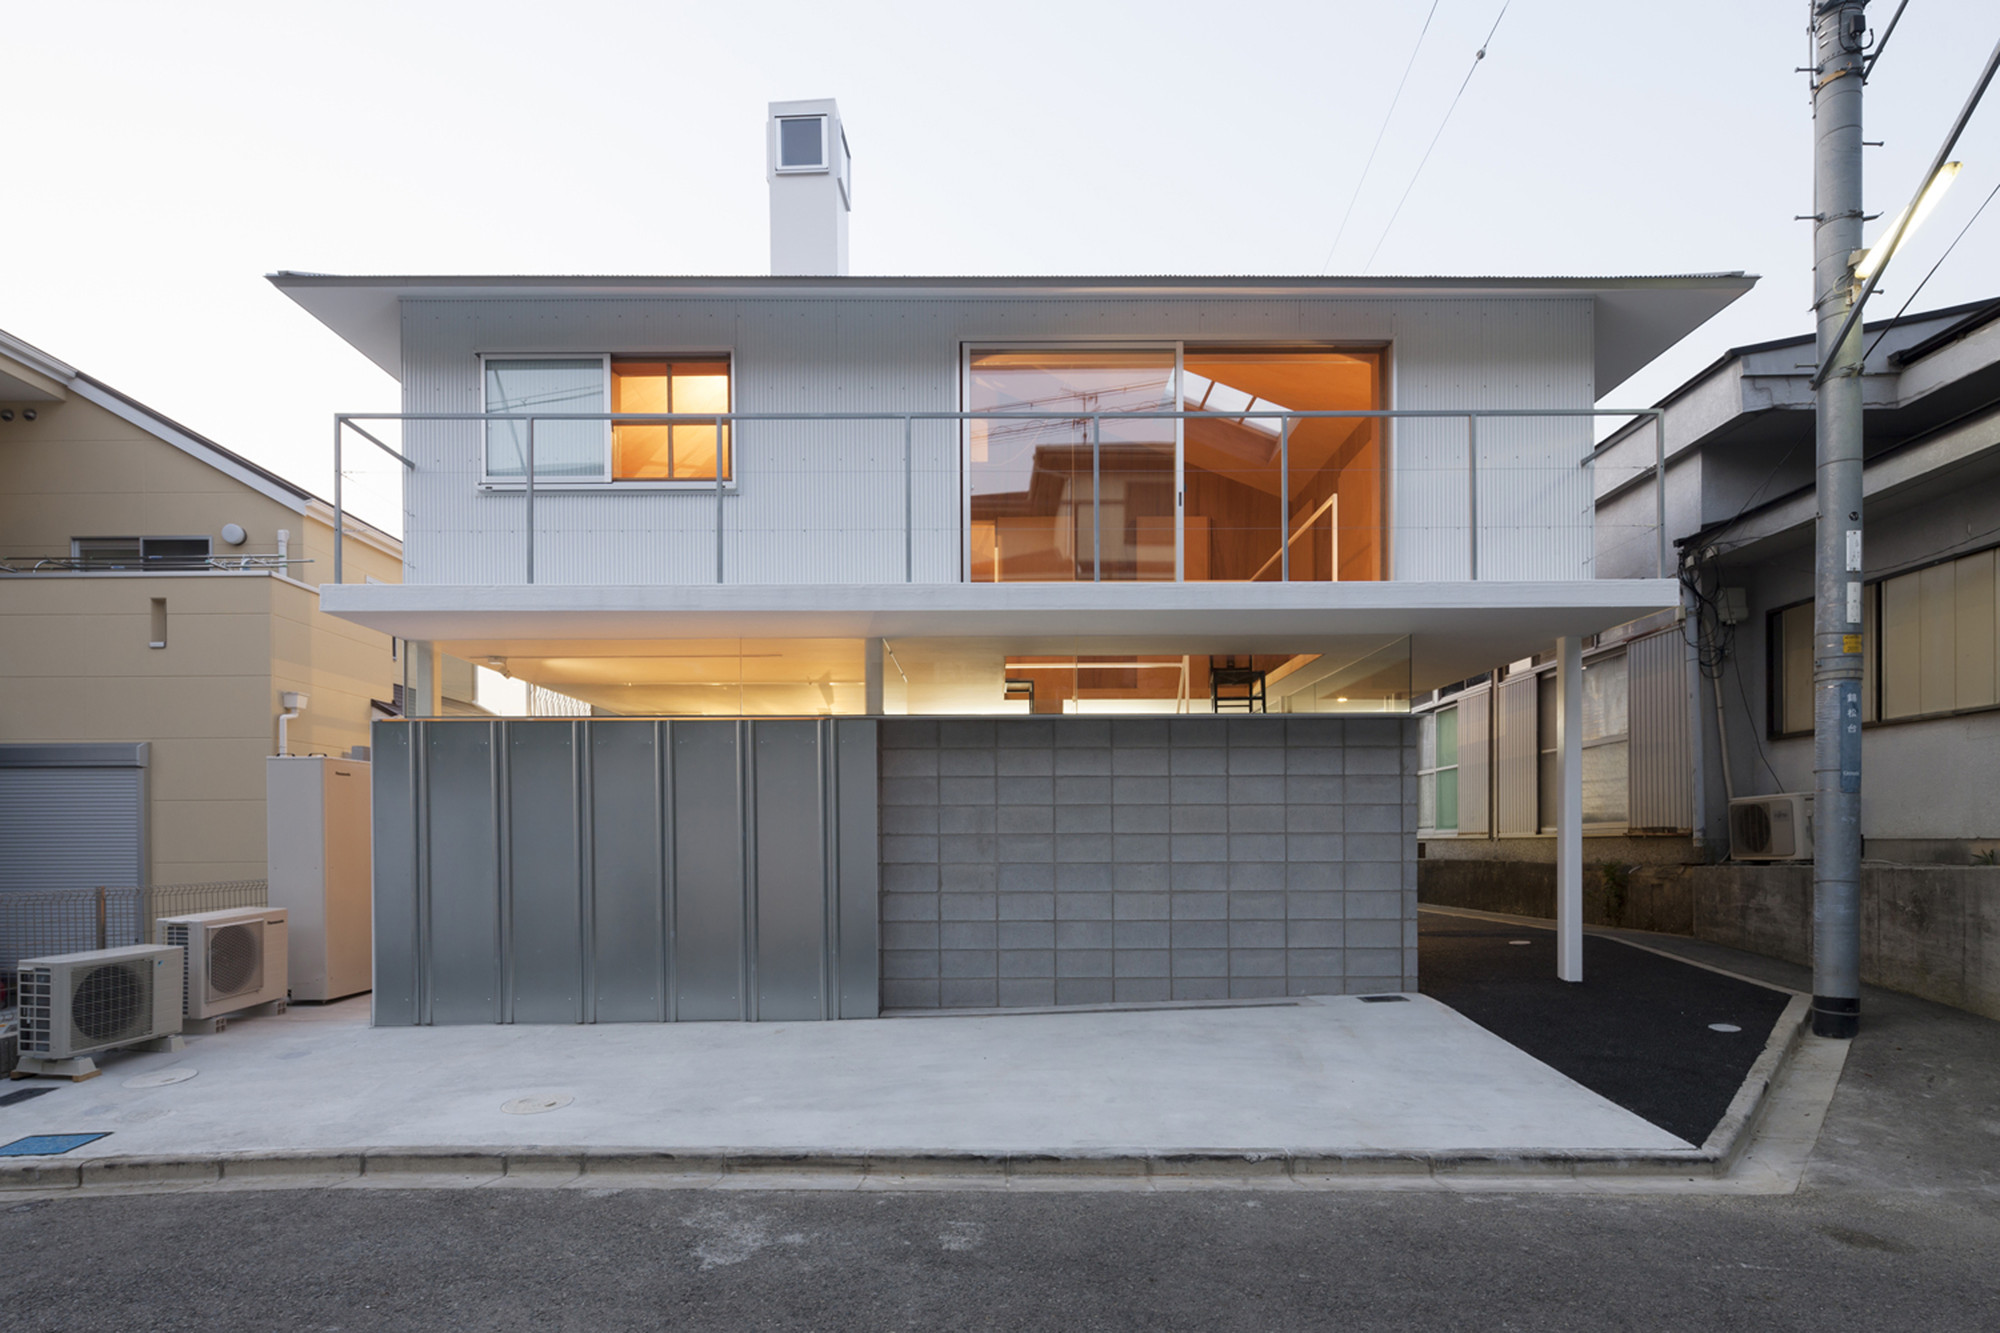 Casa en Kawanishi / Tato Architects, © Shinkenchiku Sha